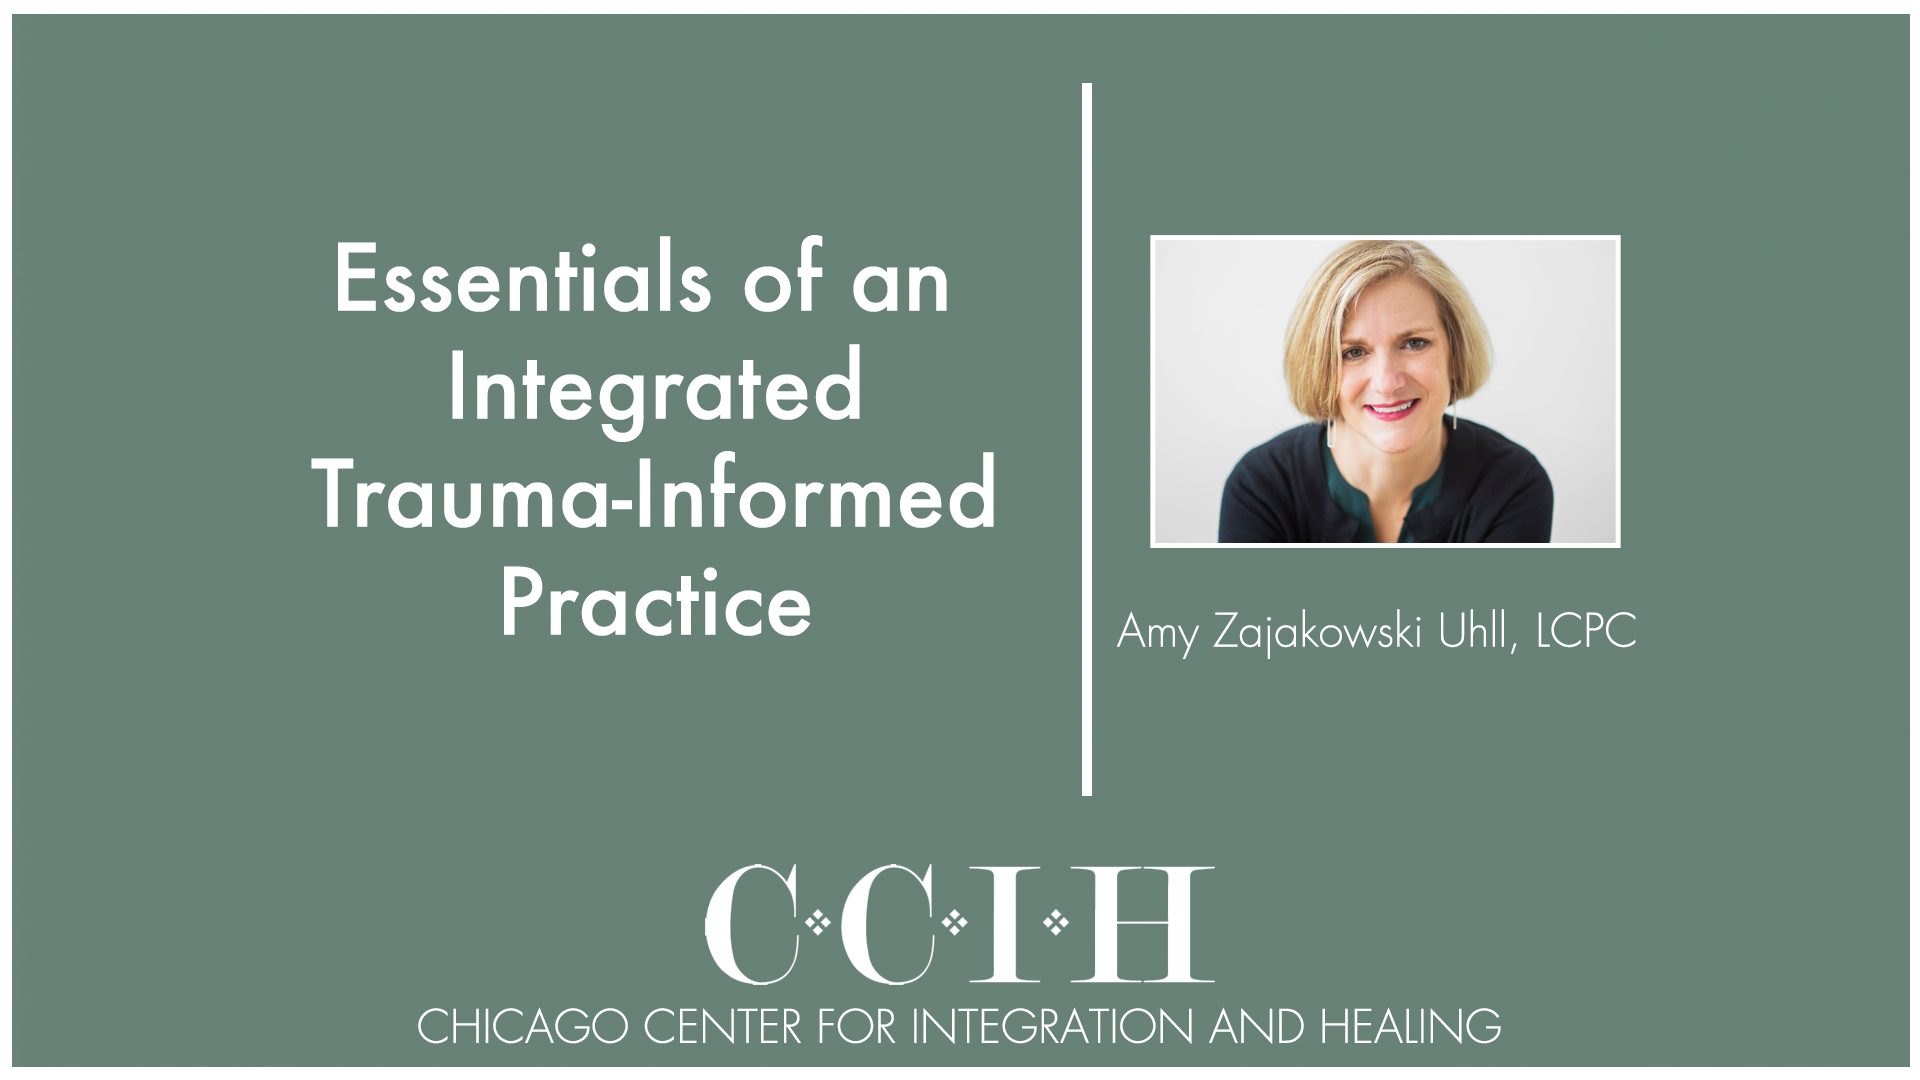 Essentials of an Integrated Trauma-Informed Practice